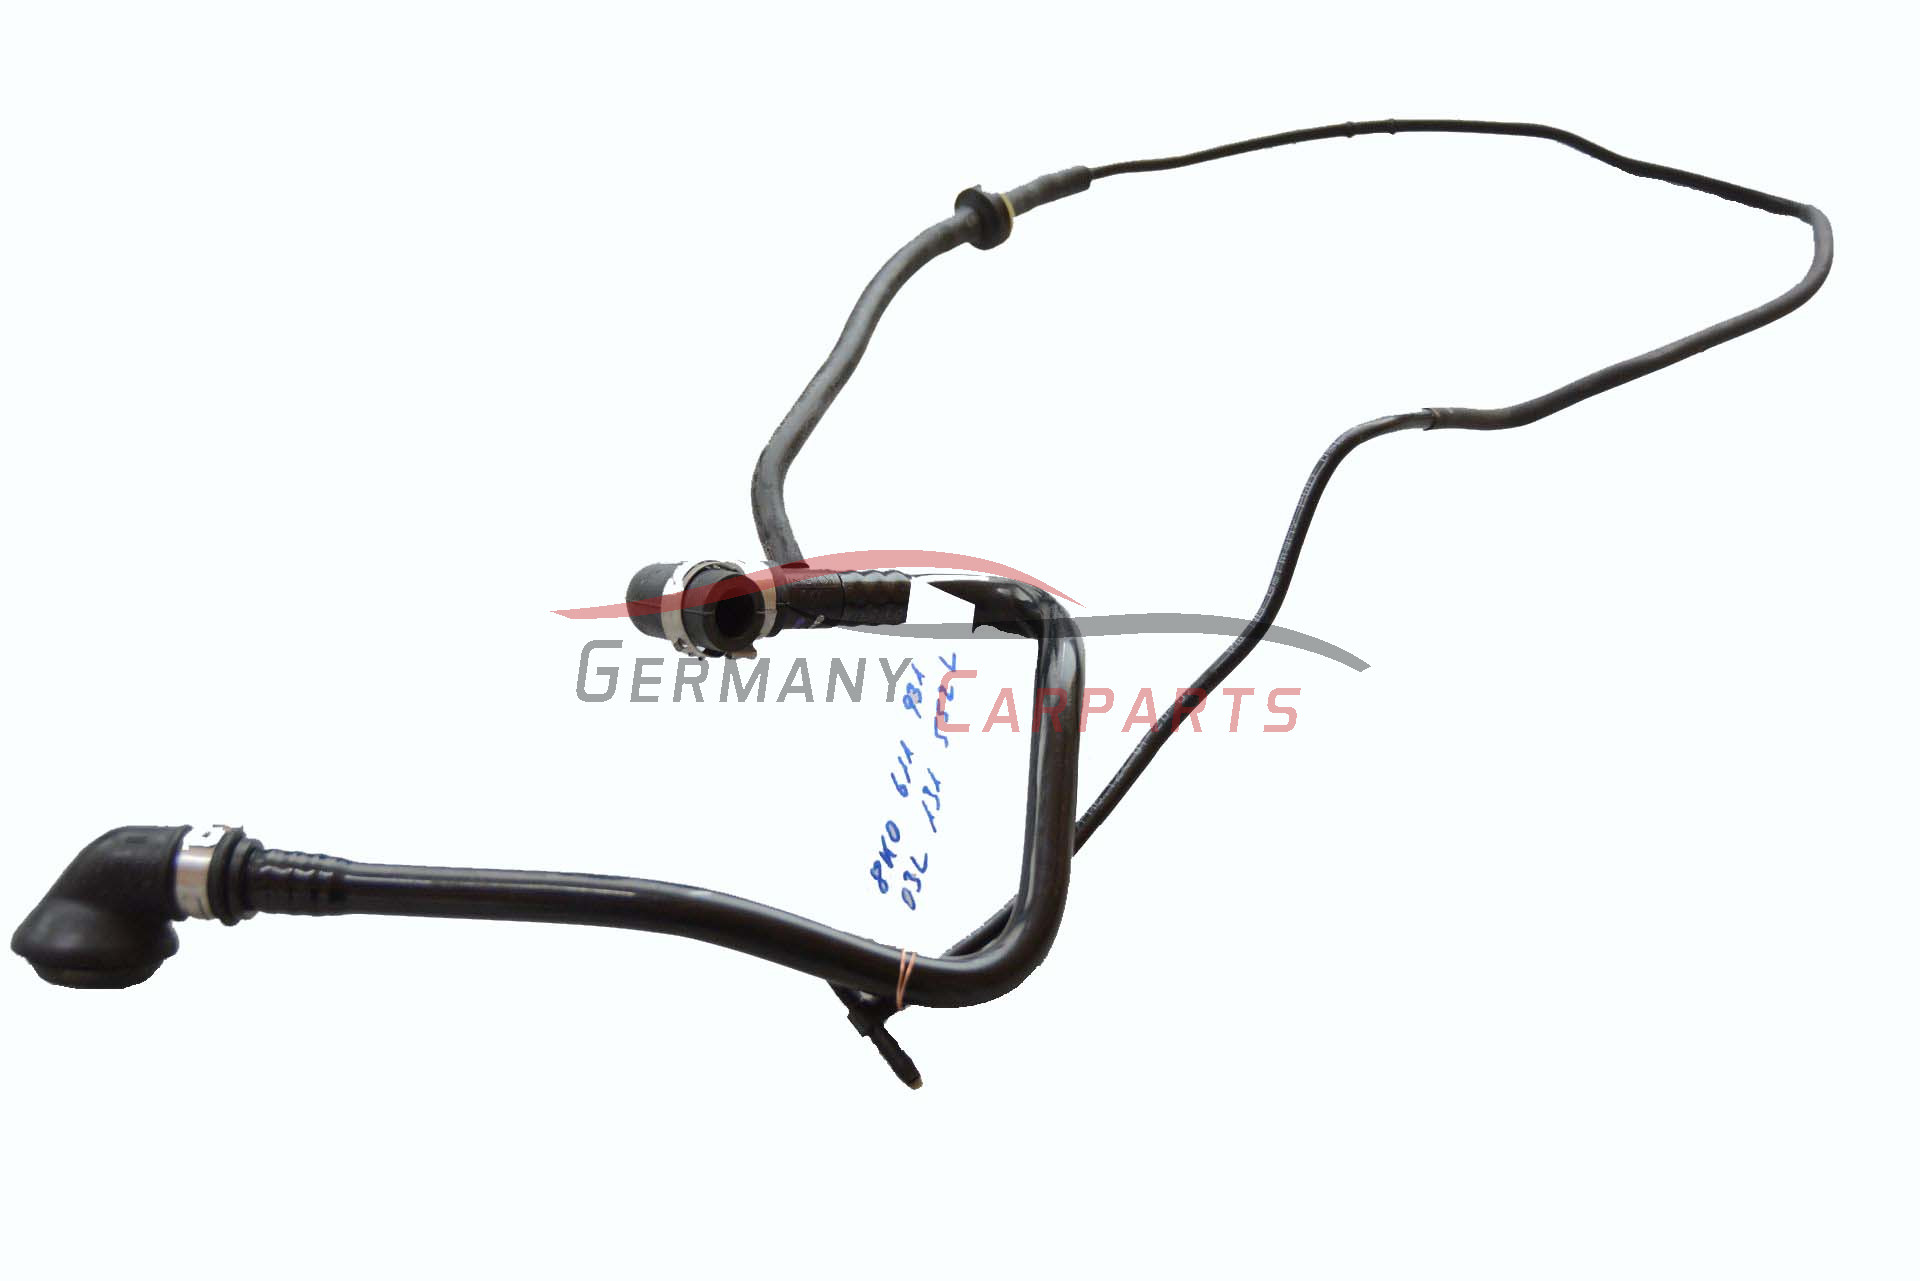 Original Audi A4 8k Unterdruckrohr Vakuumrohr Schlauch Diesel 8k0611931 furthermore Vw B3 1993 Wiring Cooling Fan Gif Version 1 Modificationdate 1244135467697 Api V2 On 2003 Passat Diagram additionally Suv Facelifting besides Mercedes Clk Rear Suspension Diagram as well 07K905715D. on audi q5 diesel